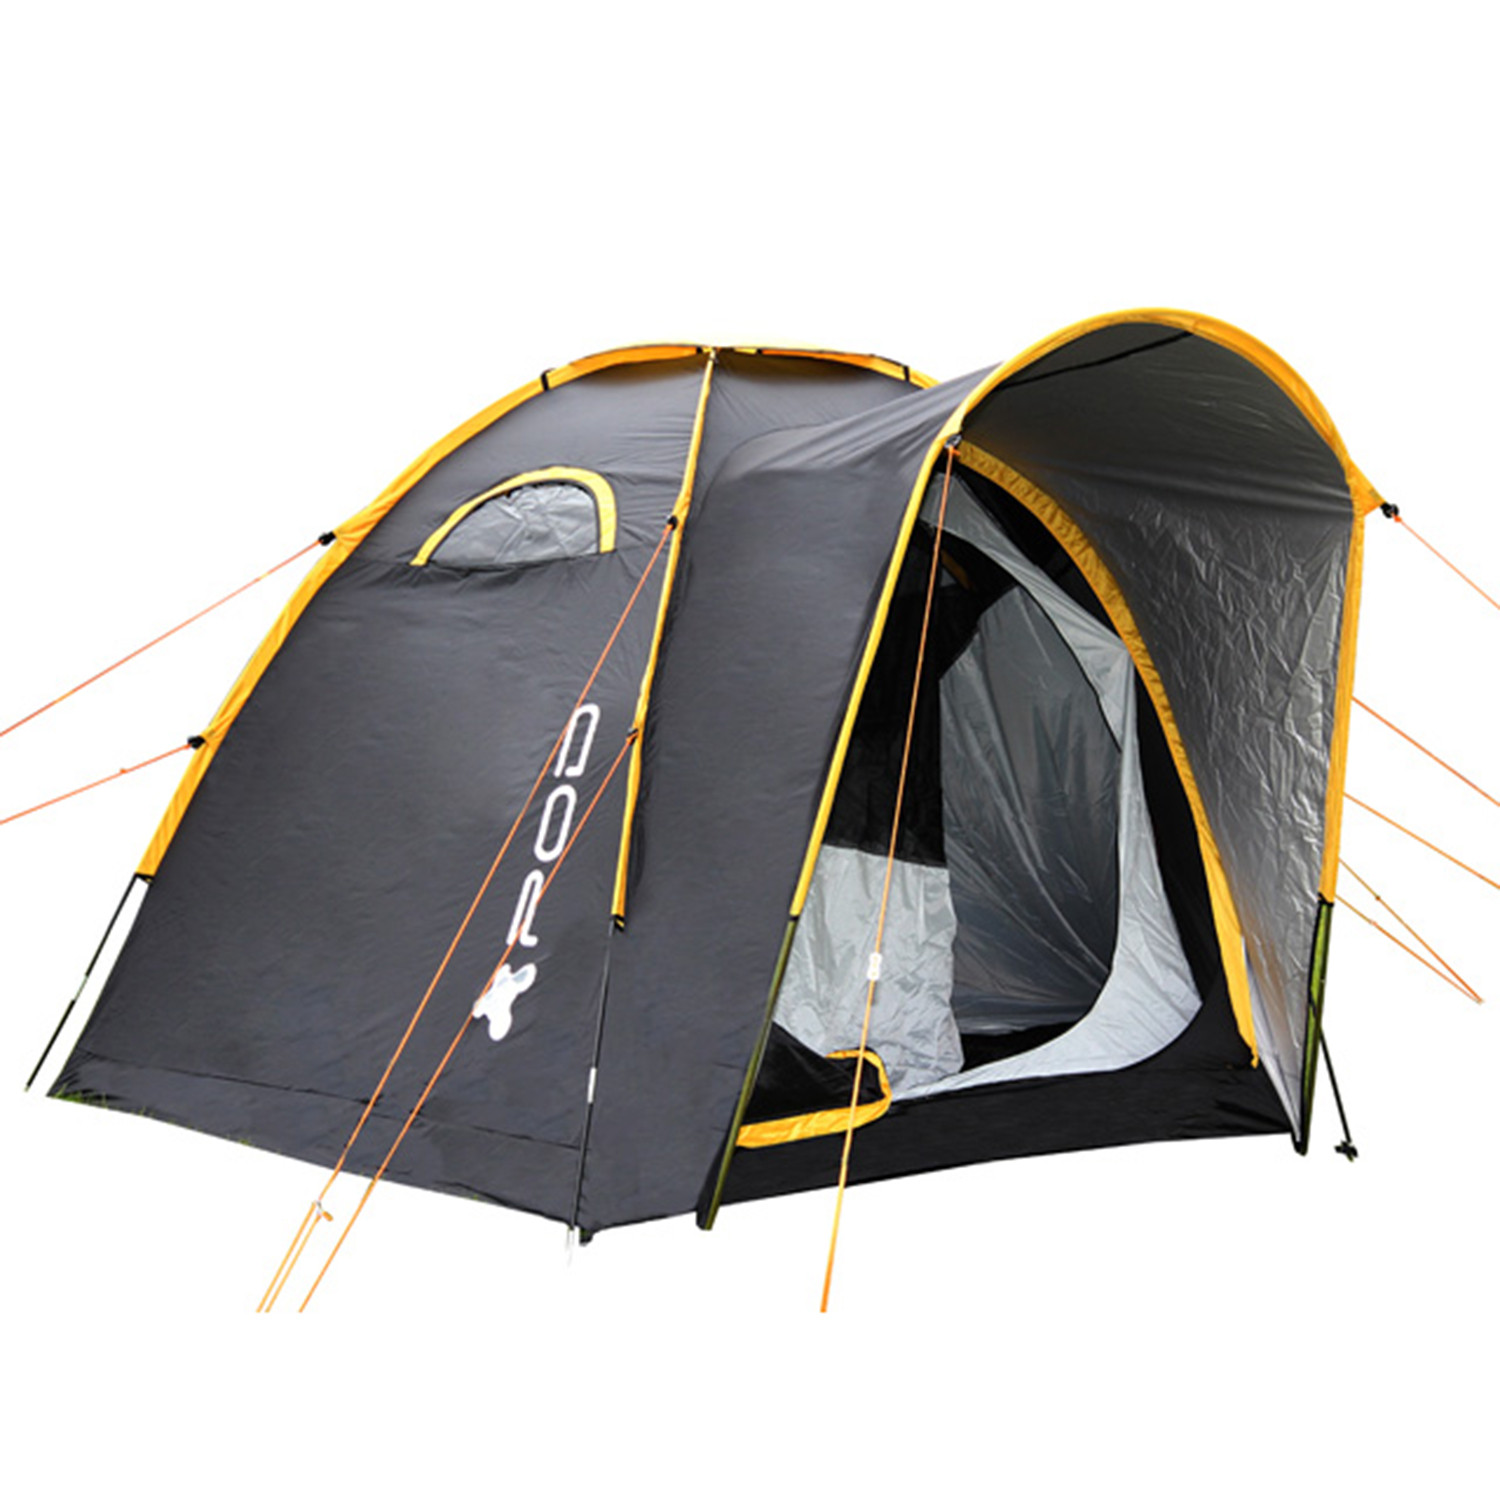 POD Mini Tent // Sleeps 4  sc 1 st  Touch of Modern & POD Mini Tent // Sleeps 4 - POD Tents - Touch of Modern